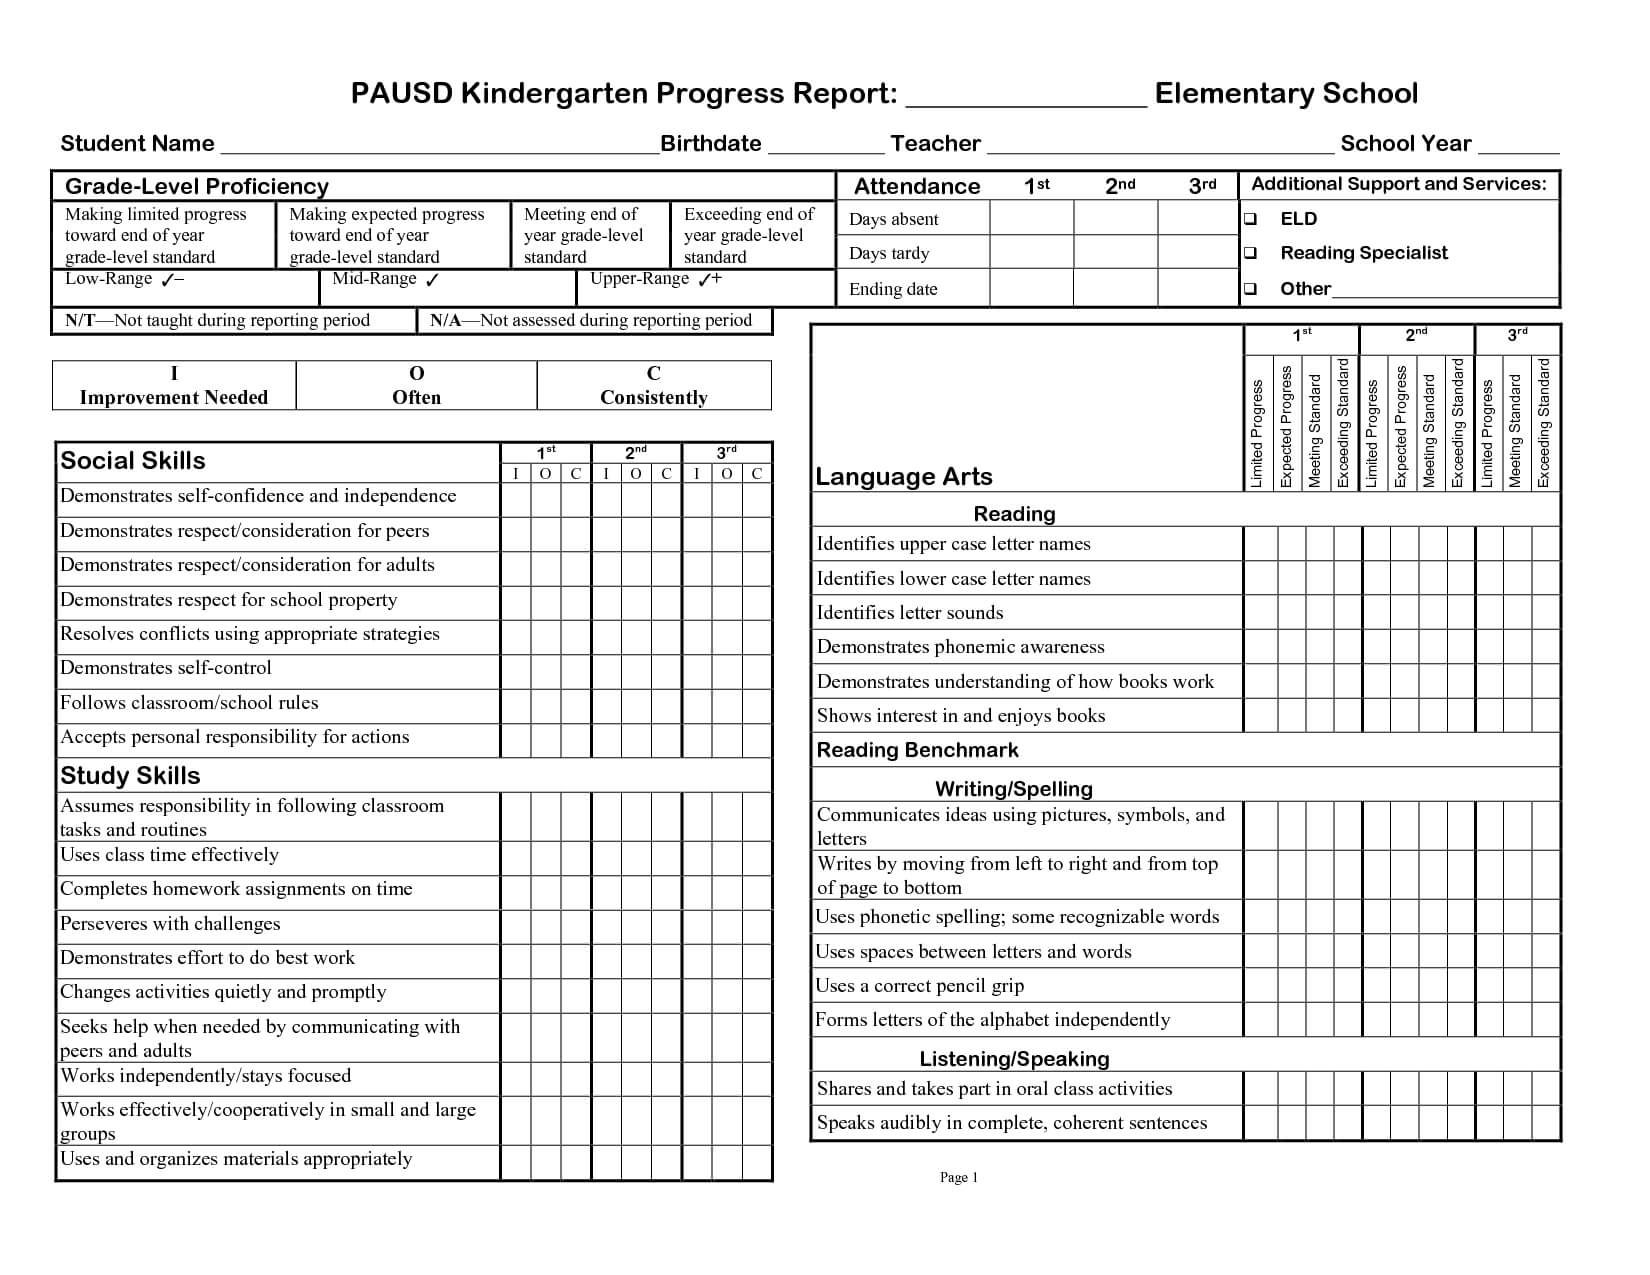 Kindergarten Social Skills Progress Report Blank Templates Regarding High School Progress Report Template